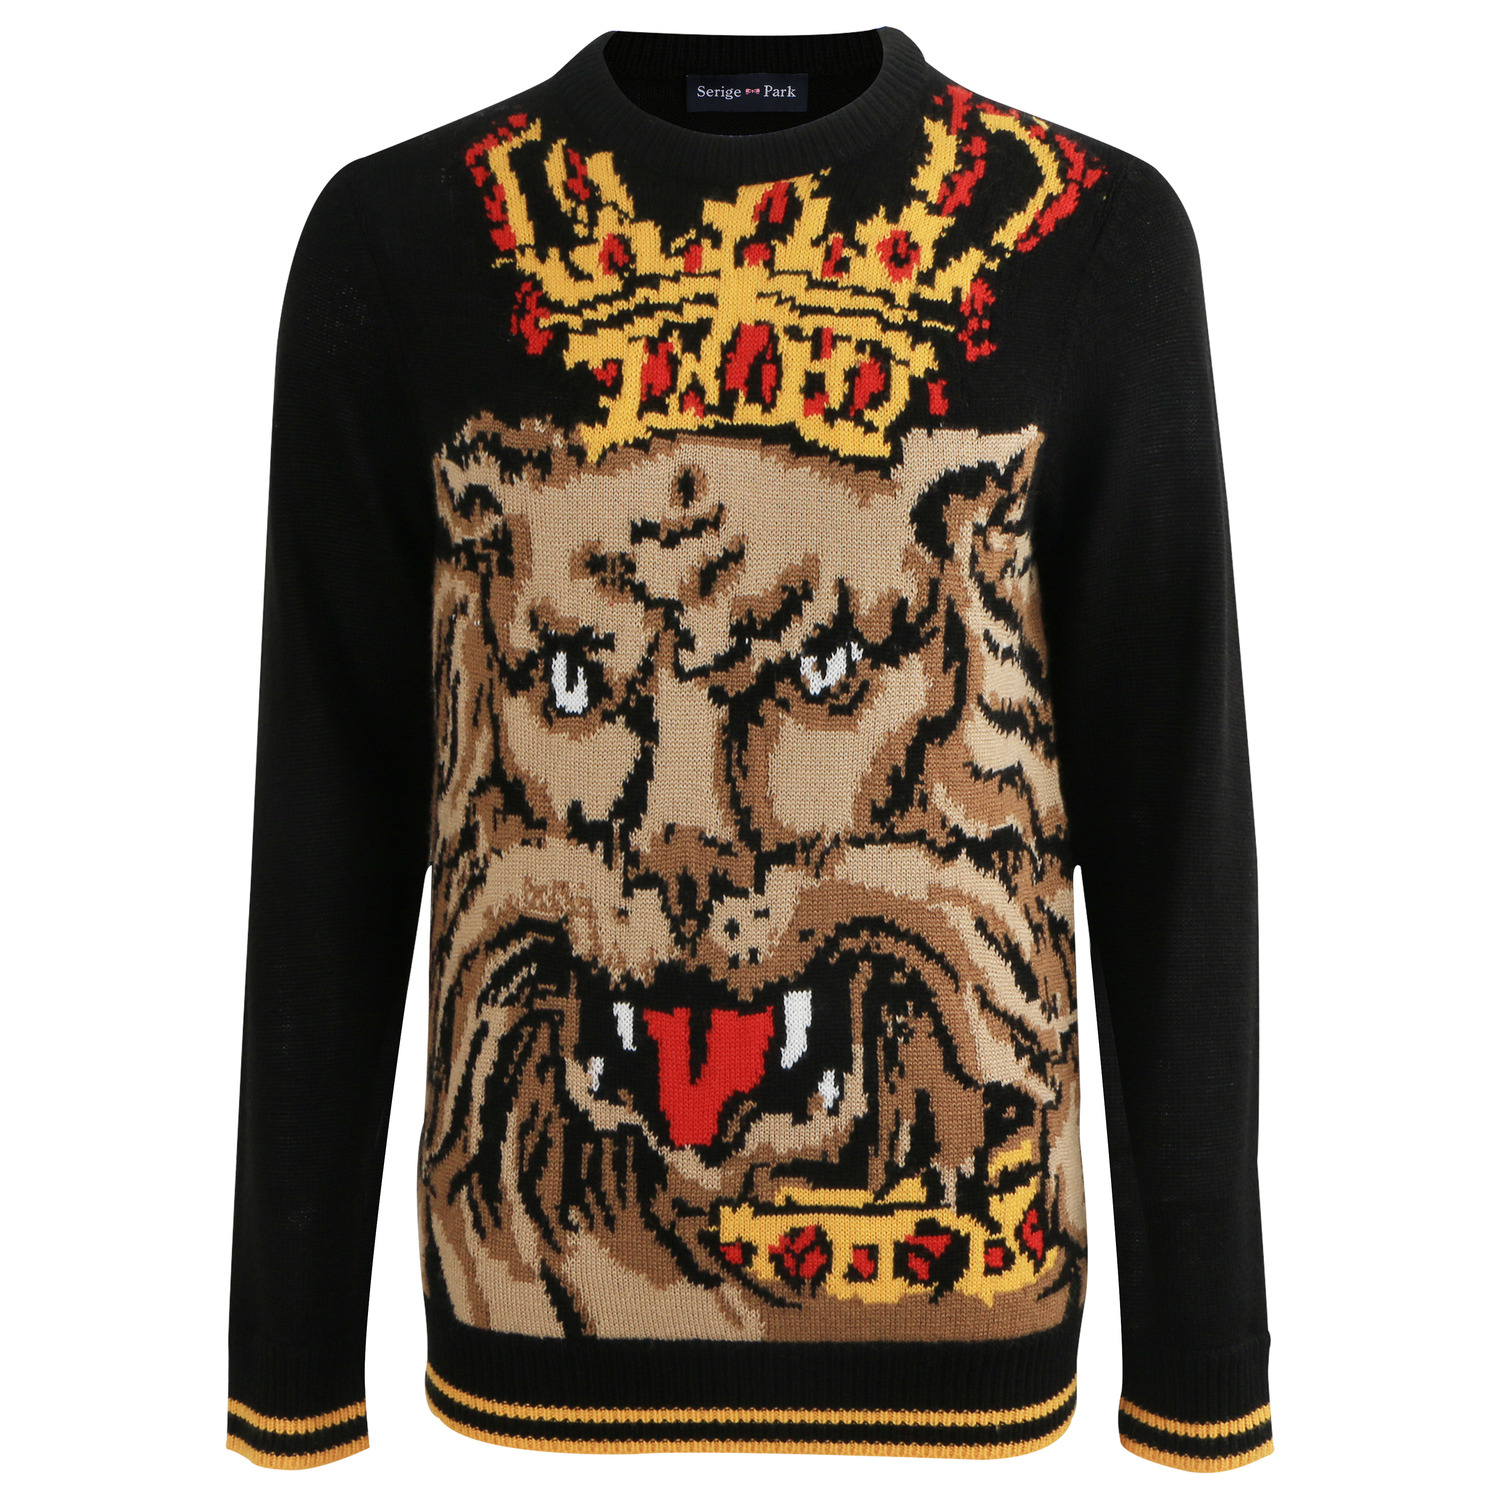 New Brand Wool  Winter Moschino 2019 Autumn Fashion Long Sleeve Knitted Pullover Men Cashmere Sweater High Quality Pattern